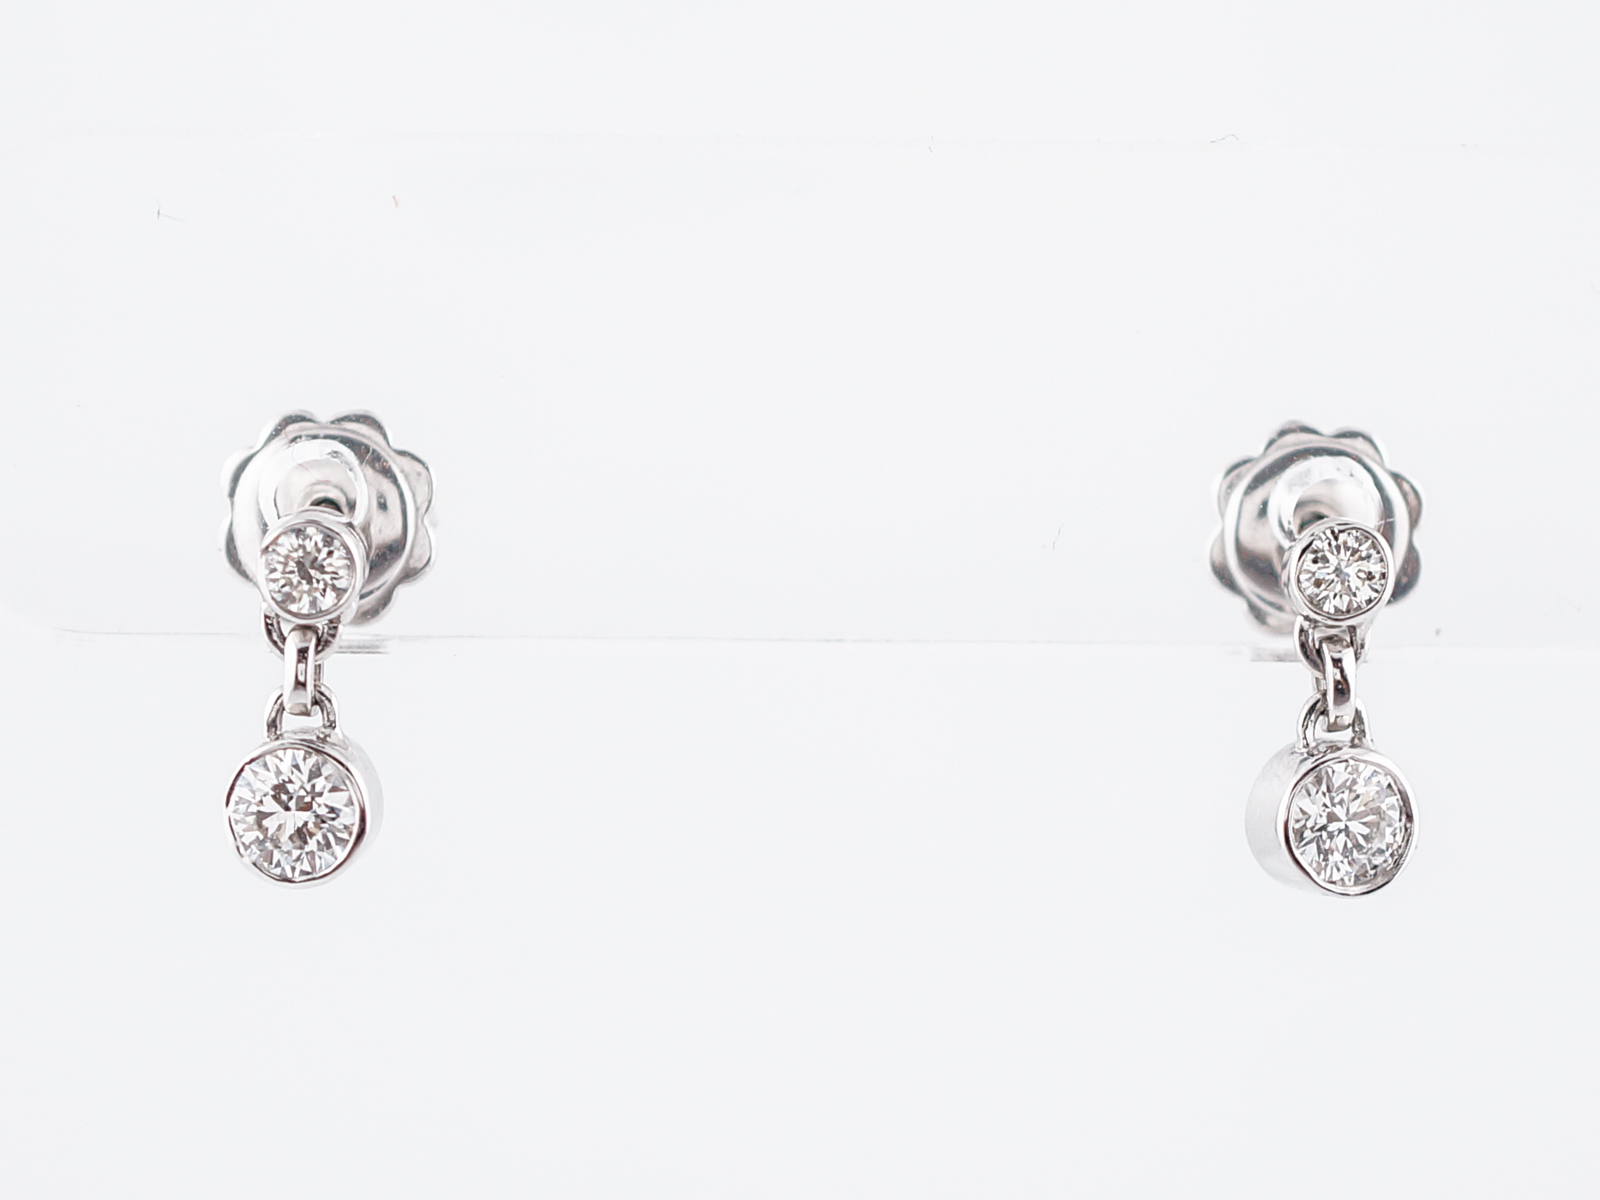 Modern Earrings .42 Round Brilliant Cut Diamonds in 14k White Gold-1